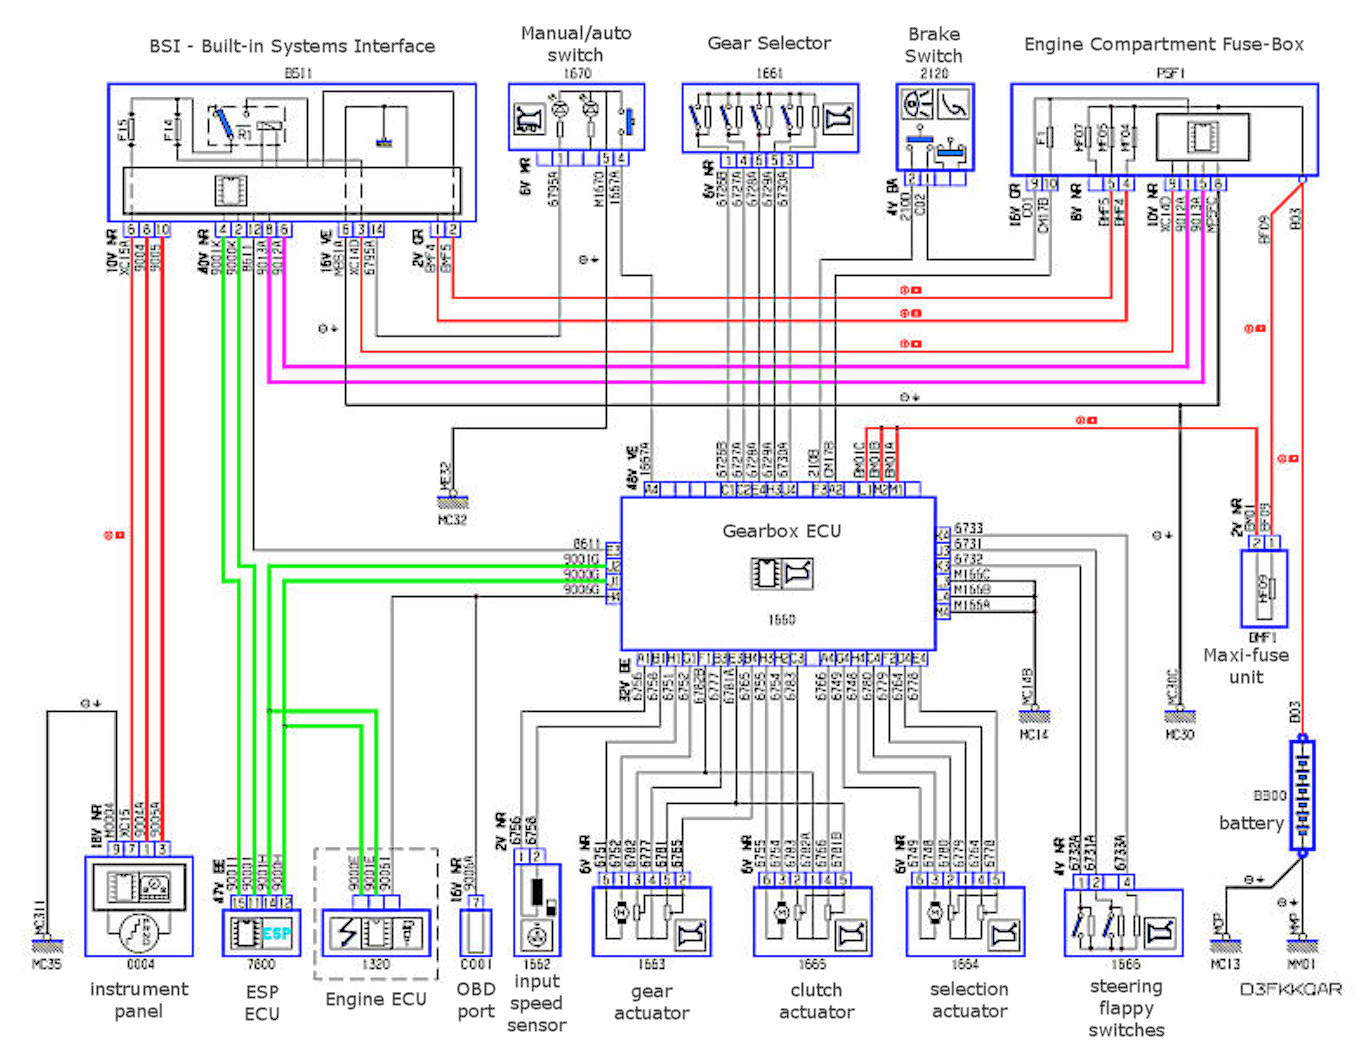 5gearboxecu peugeot boxer wiring diagram pdf peugeot wiring diagrams for diy peugeot 206 bsi wiring diagram at webbmarketing.co